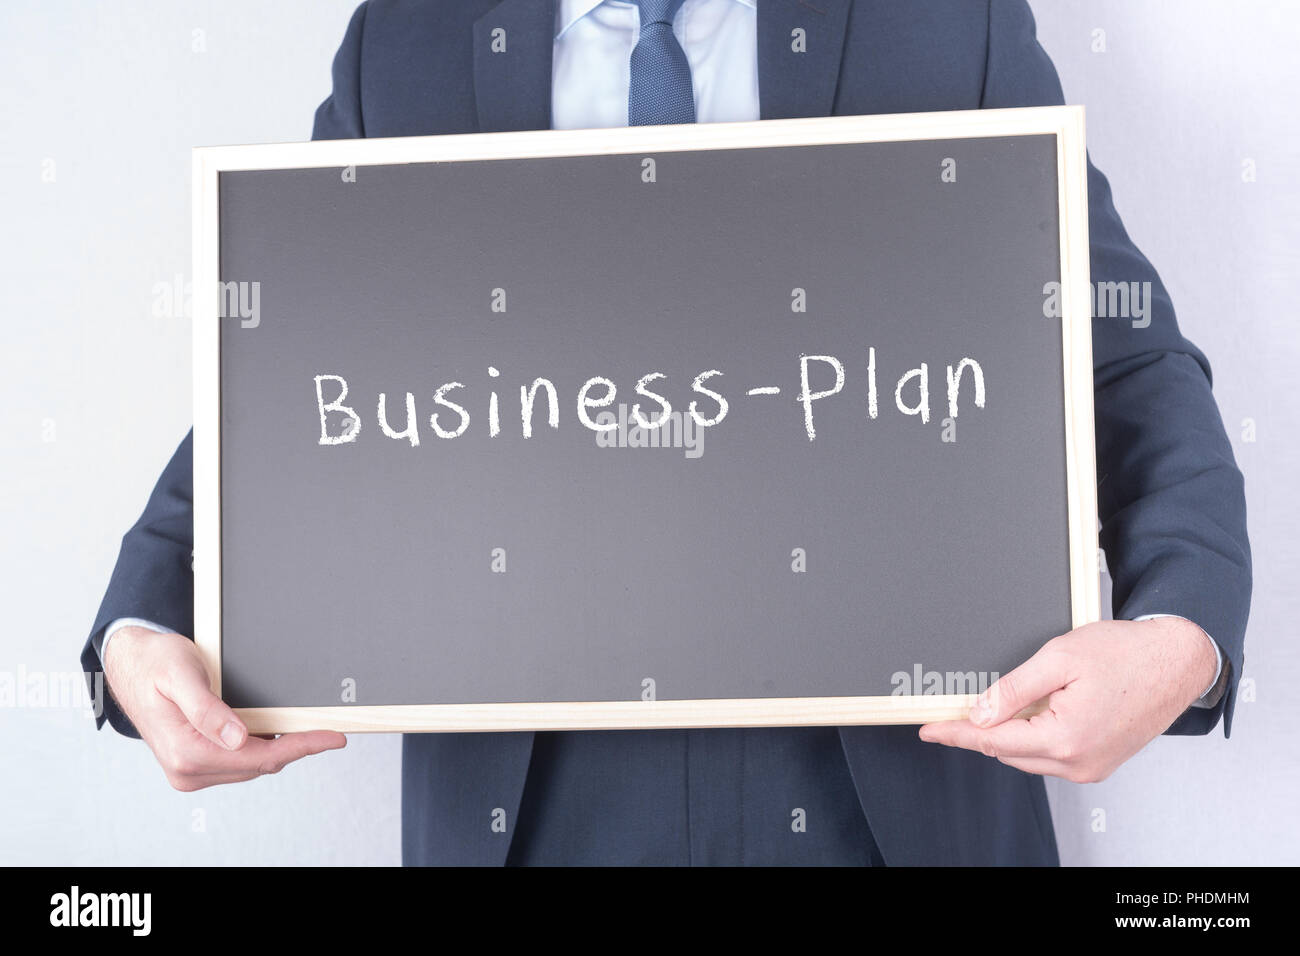 Business plan for start-ups companies - Stock Image